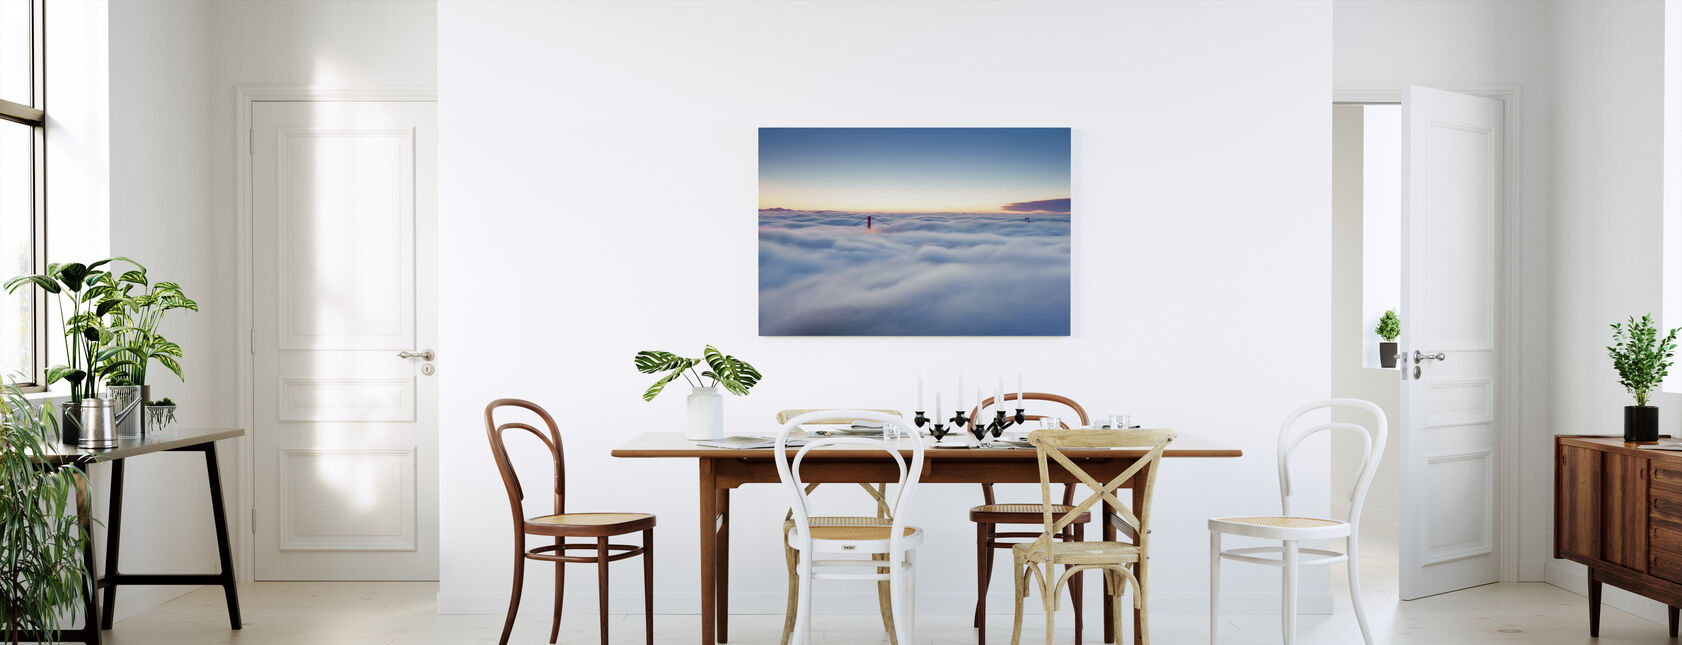 Fog over San Francisco - Canvas print - Kitchen